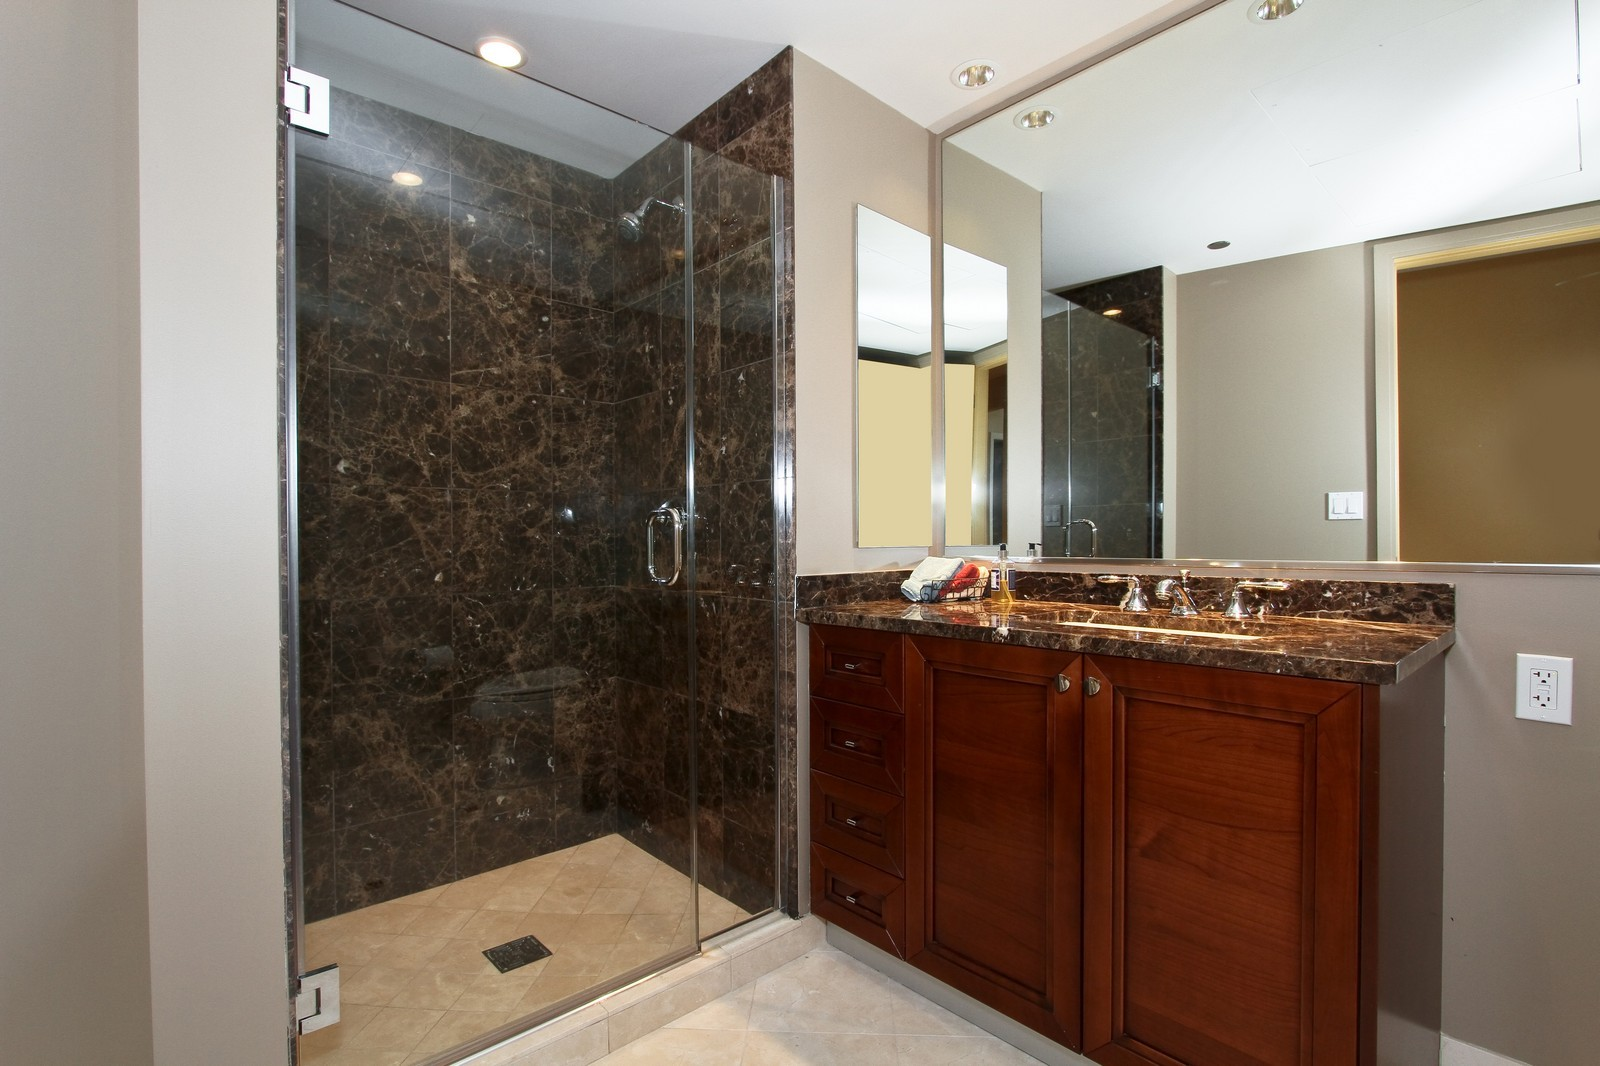 Real Estate Photography - 60 E Monroe, 6501, Chicago, IL, 60603 - Bathroom